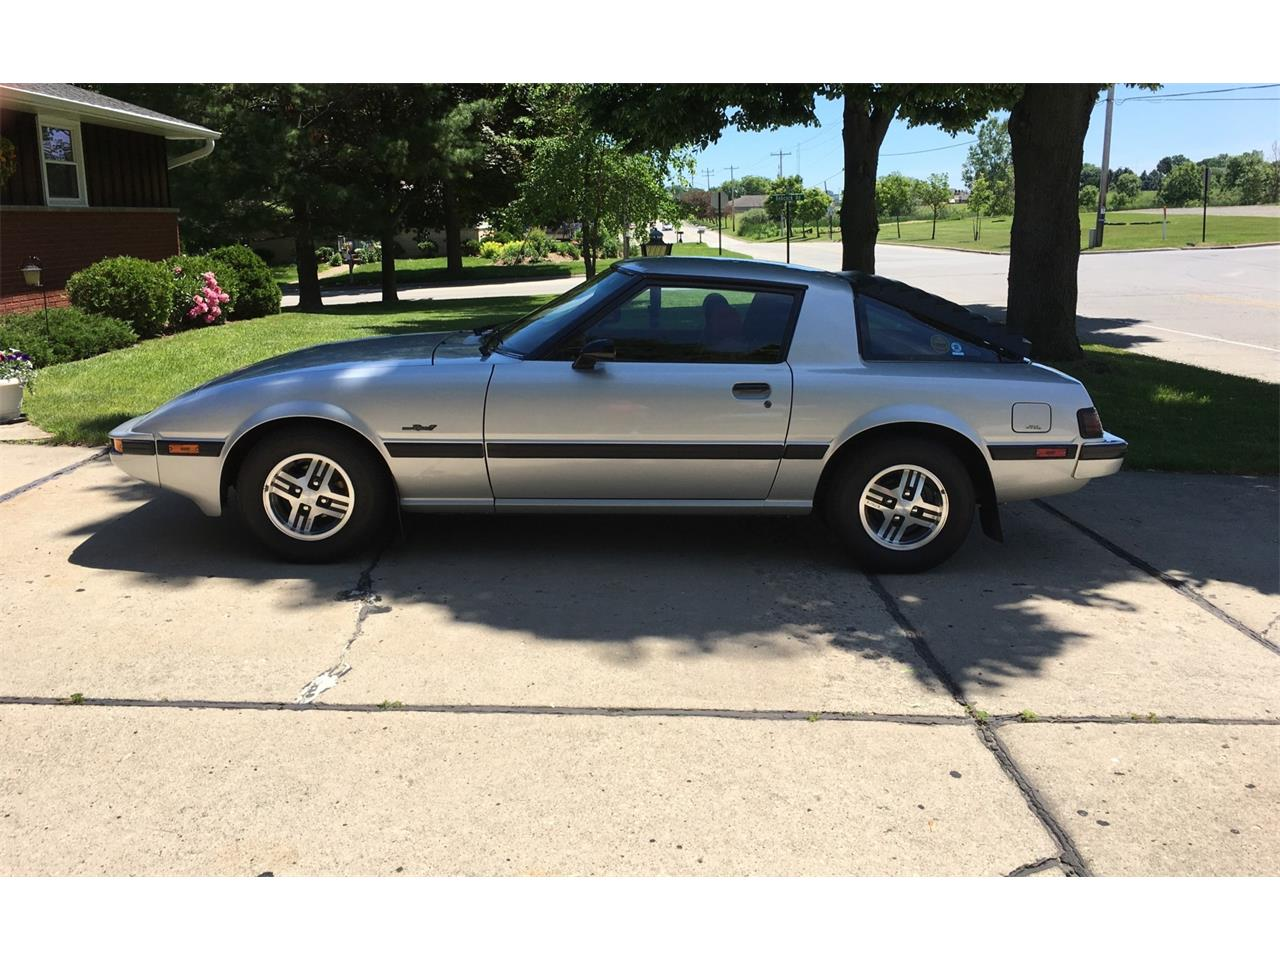 1985 Mazda RX-7 for sale in Green Bay, WI – photo 3